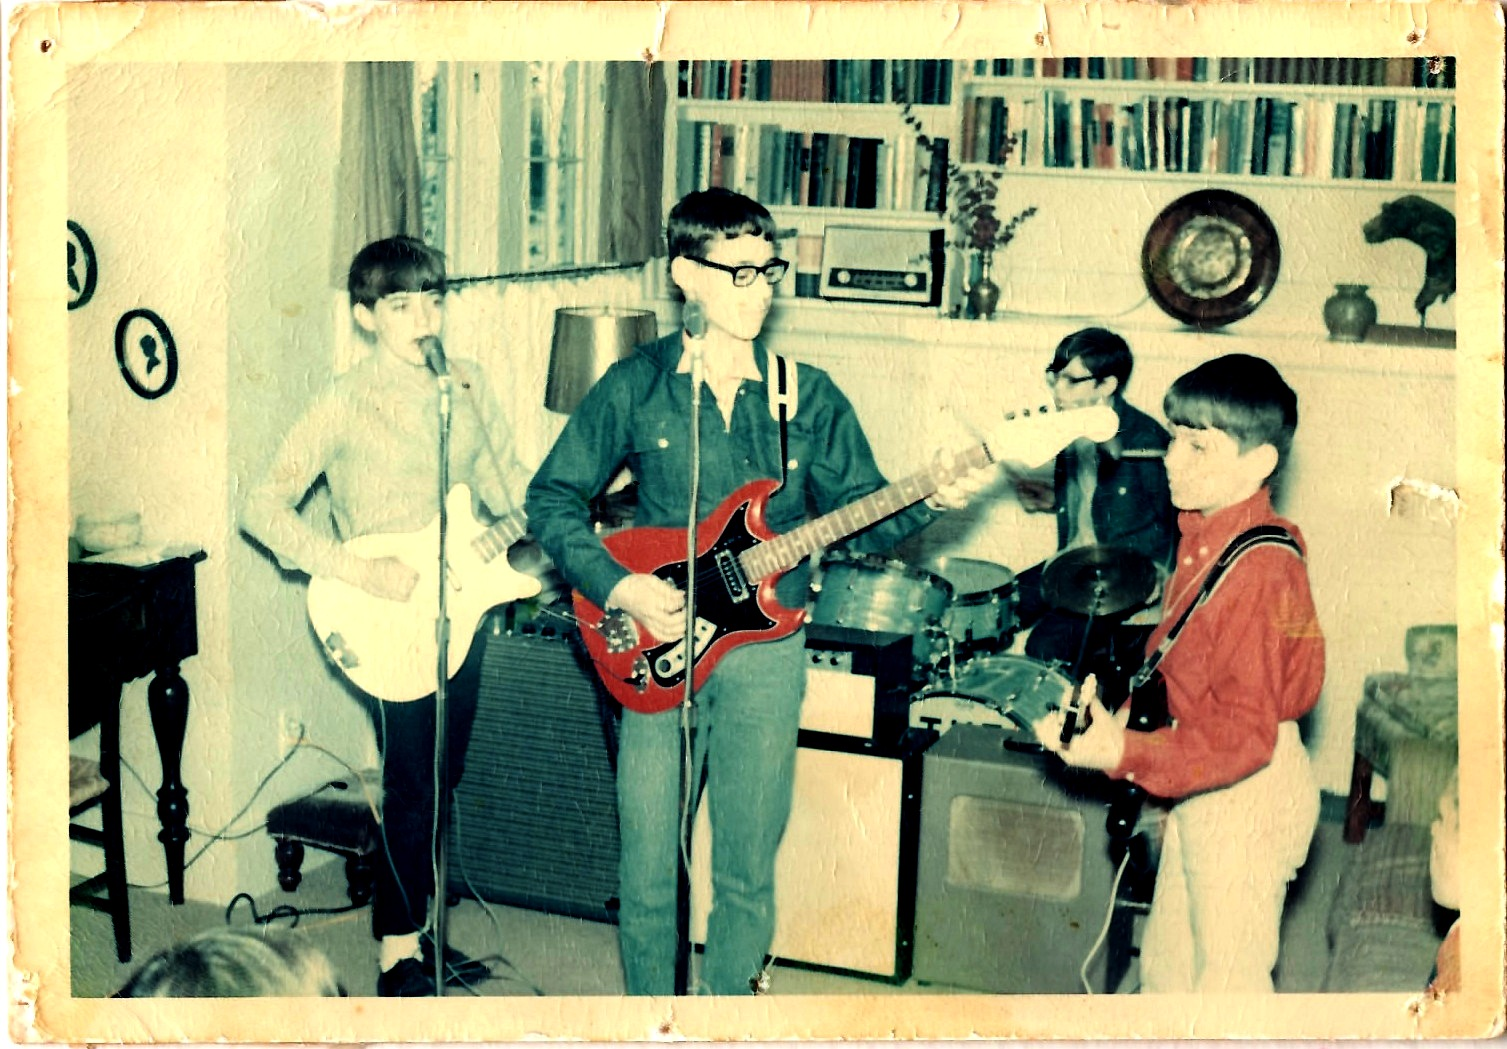 I'm on the right, rockin' my first electric guitar, the superhot Harmony Rocket. Notice the precise job we did lining up the amps!